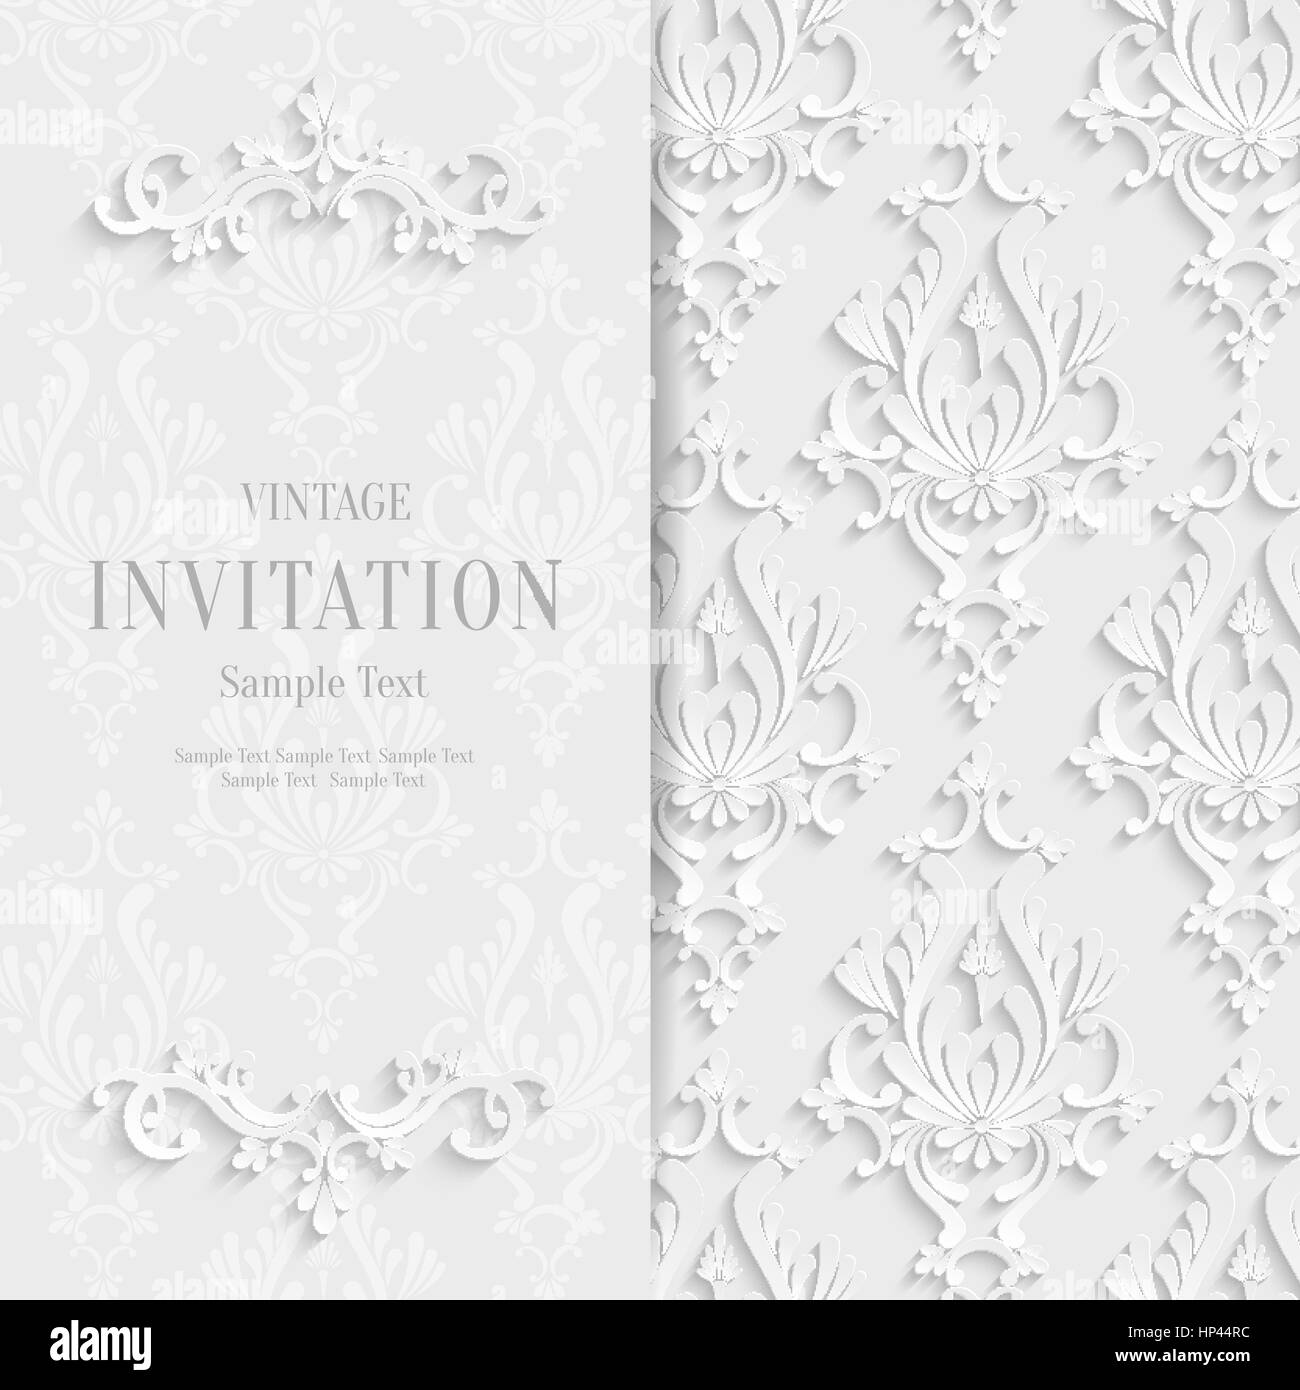 Vector white floral 3d christmas and invitation background vector white floral 3d christmas and invitation background template stopboris Images